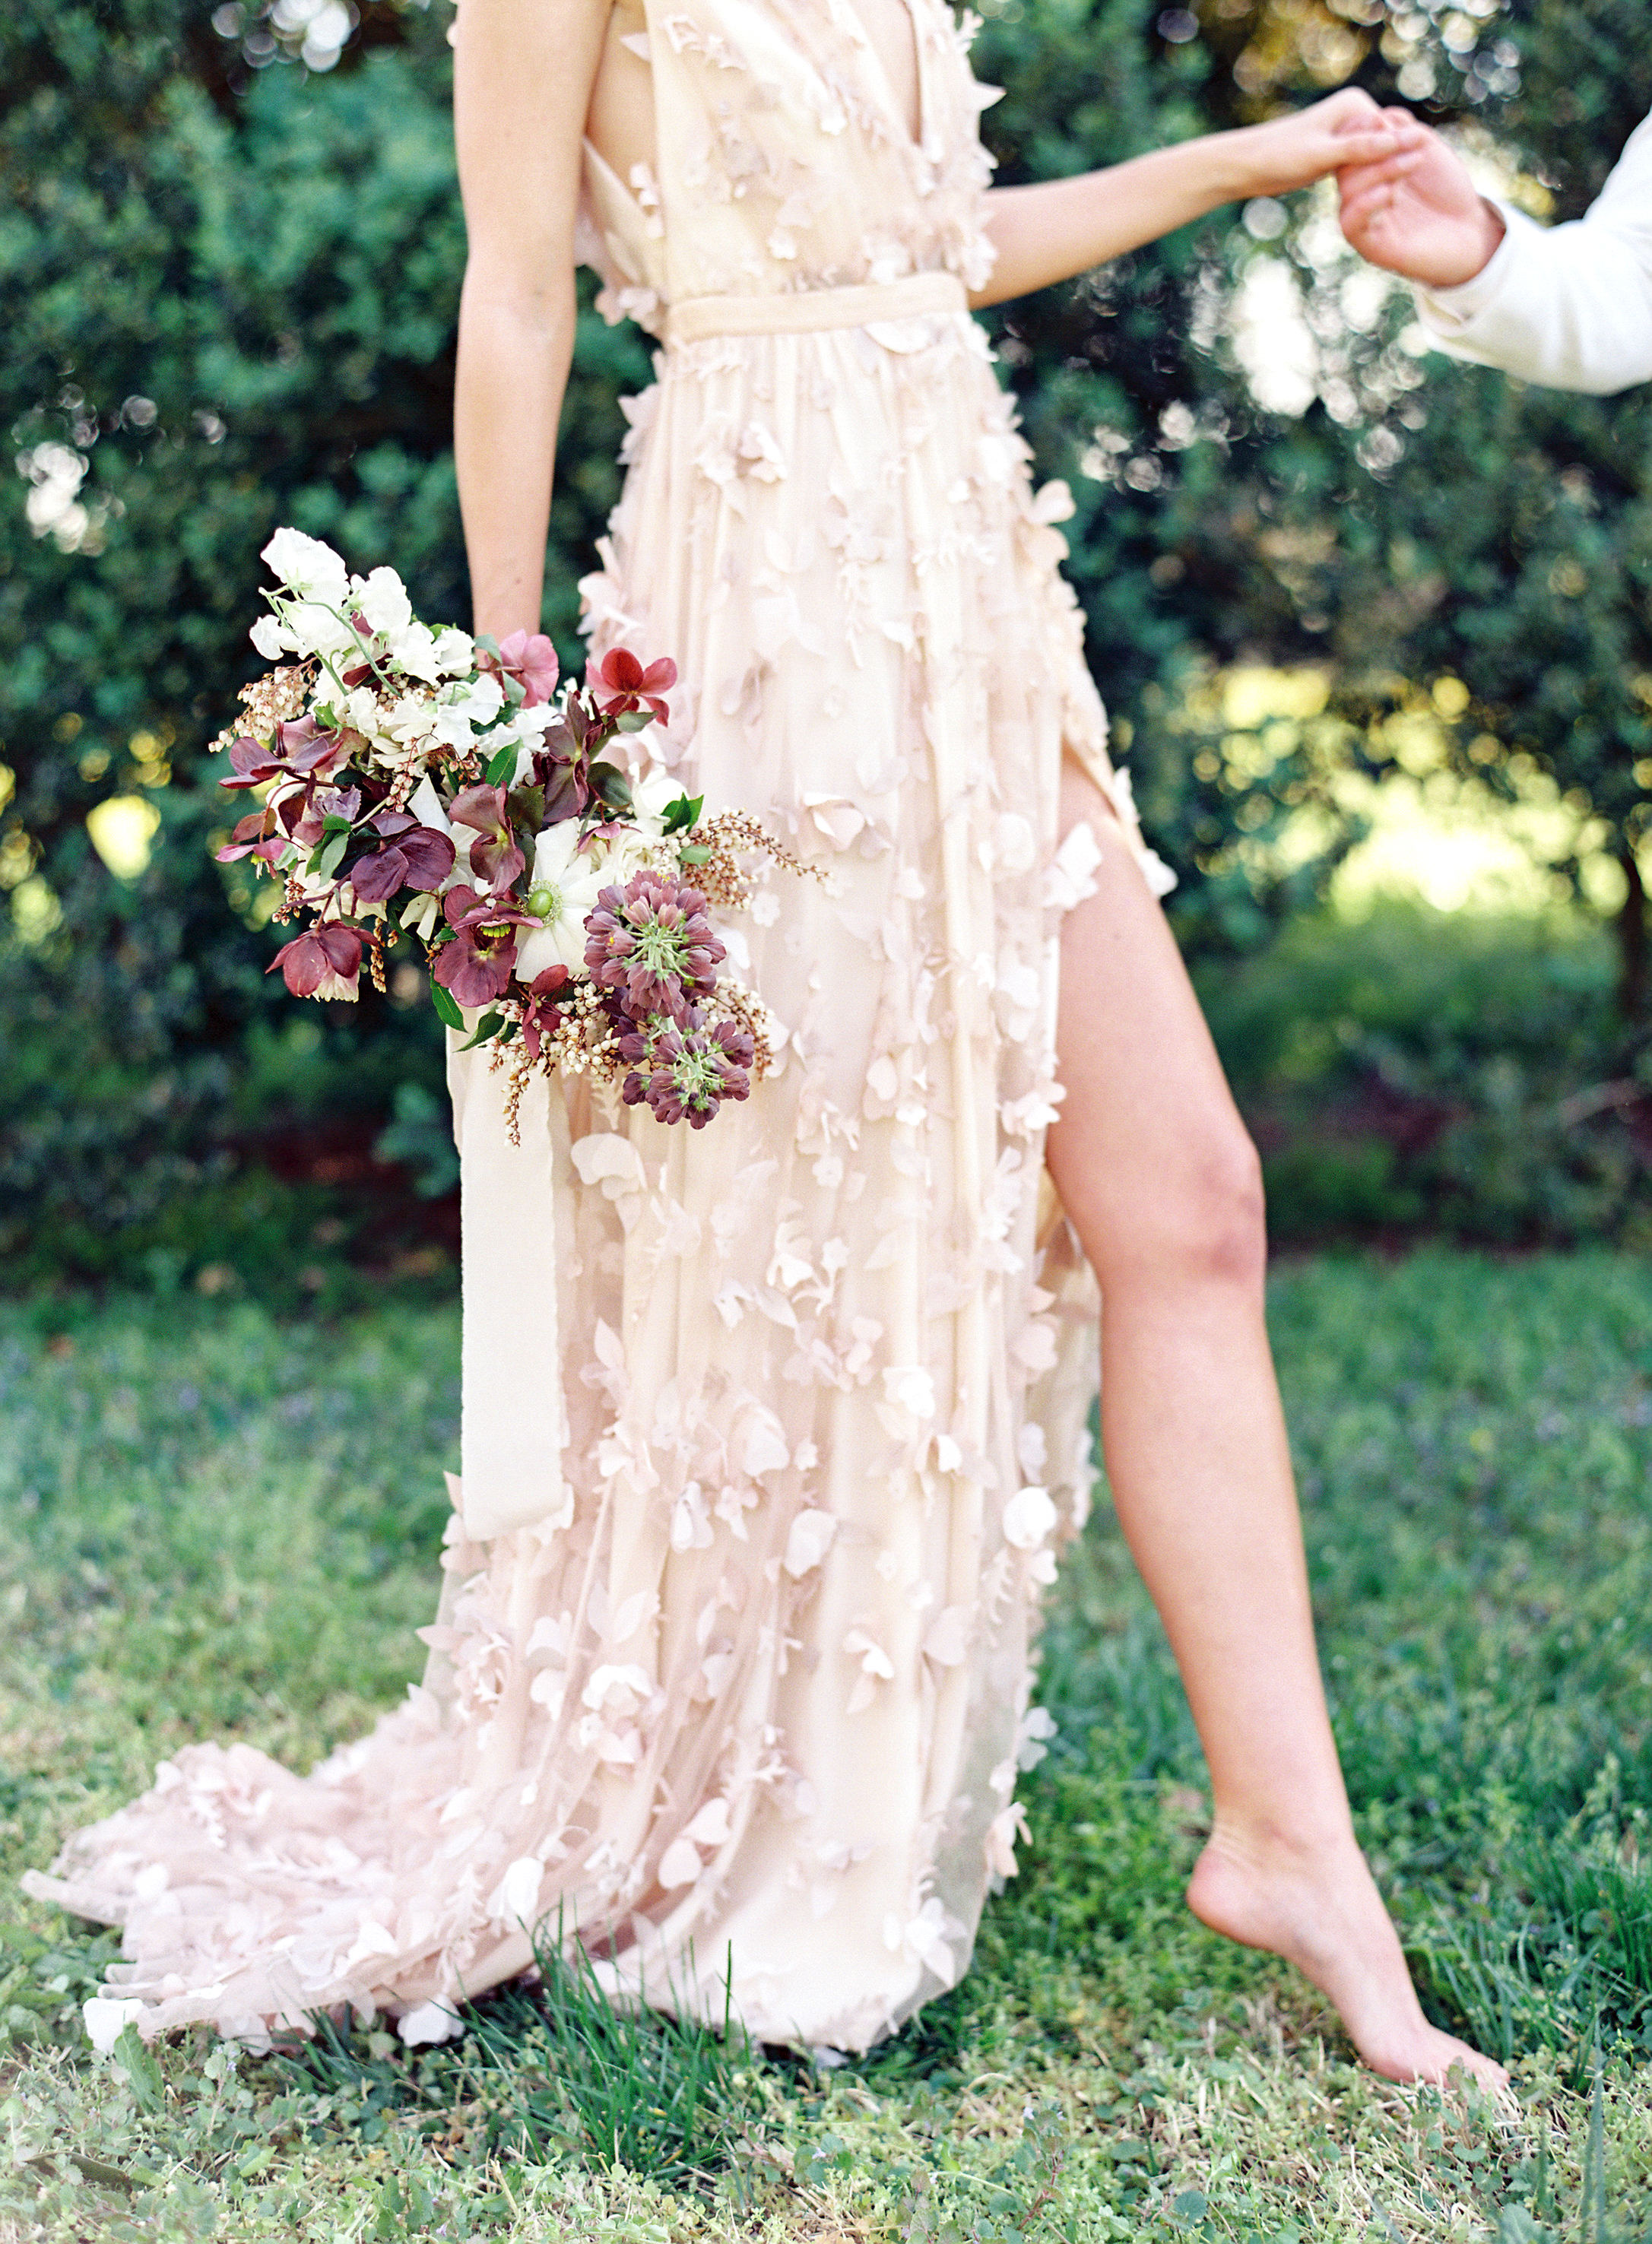 Virginia blush spring wedding at North Point Plantation with Rachel May Photography and East Made Event Company featured on OnceWed-0249.jpg